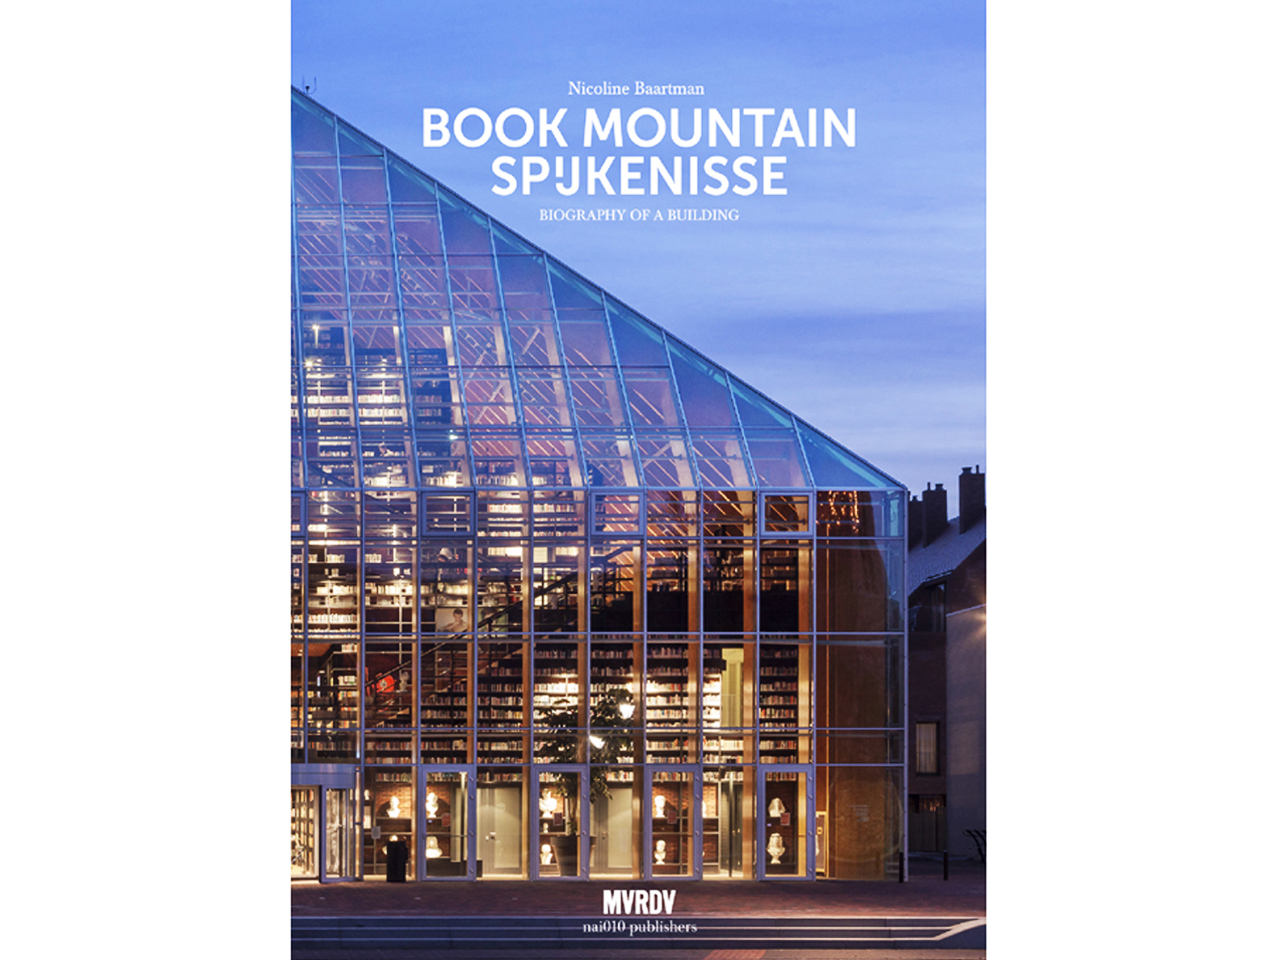 Book Mountain Spijkenisse - Biography of a Building